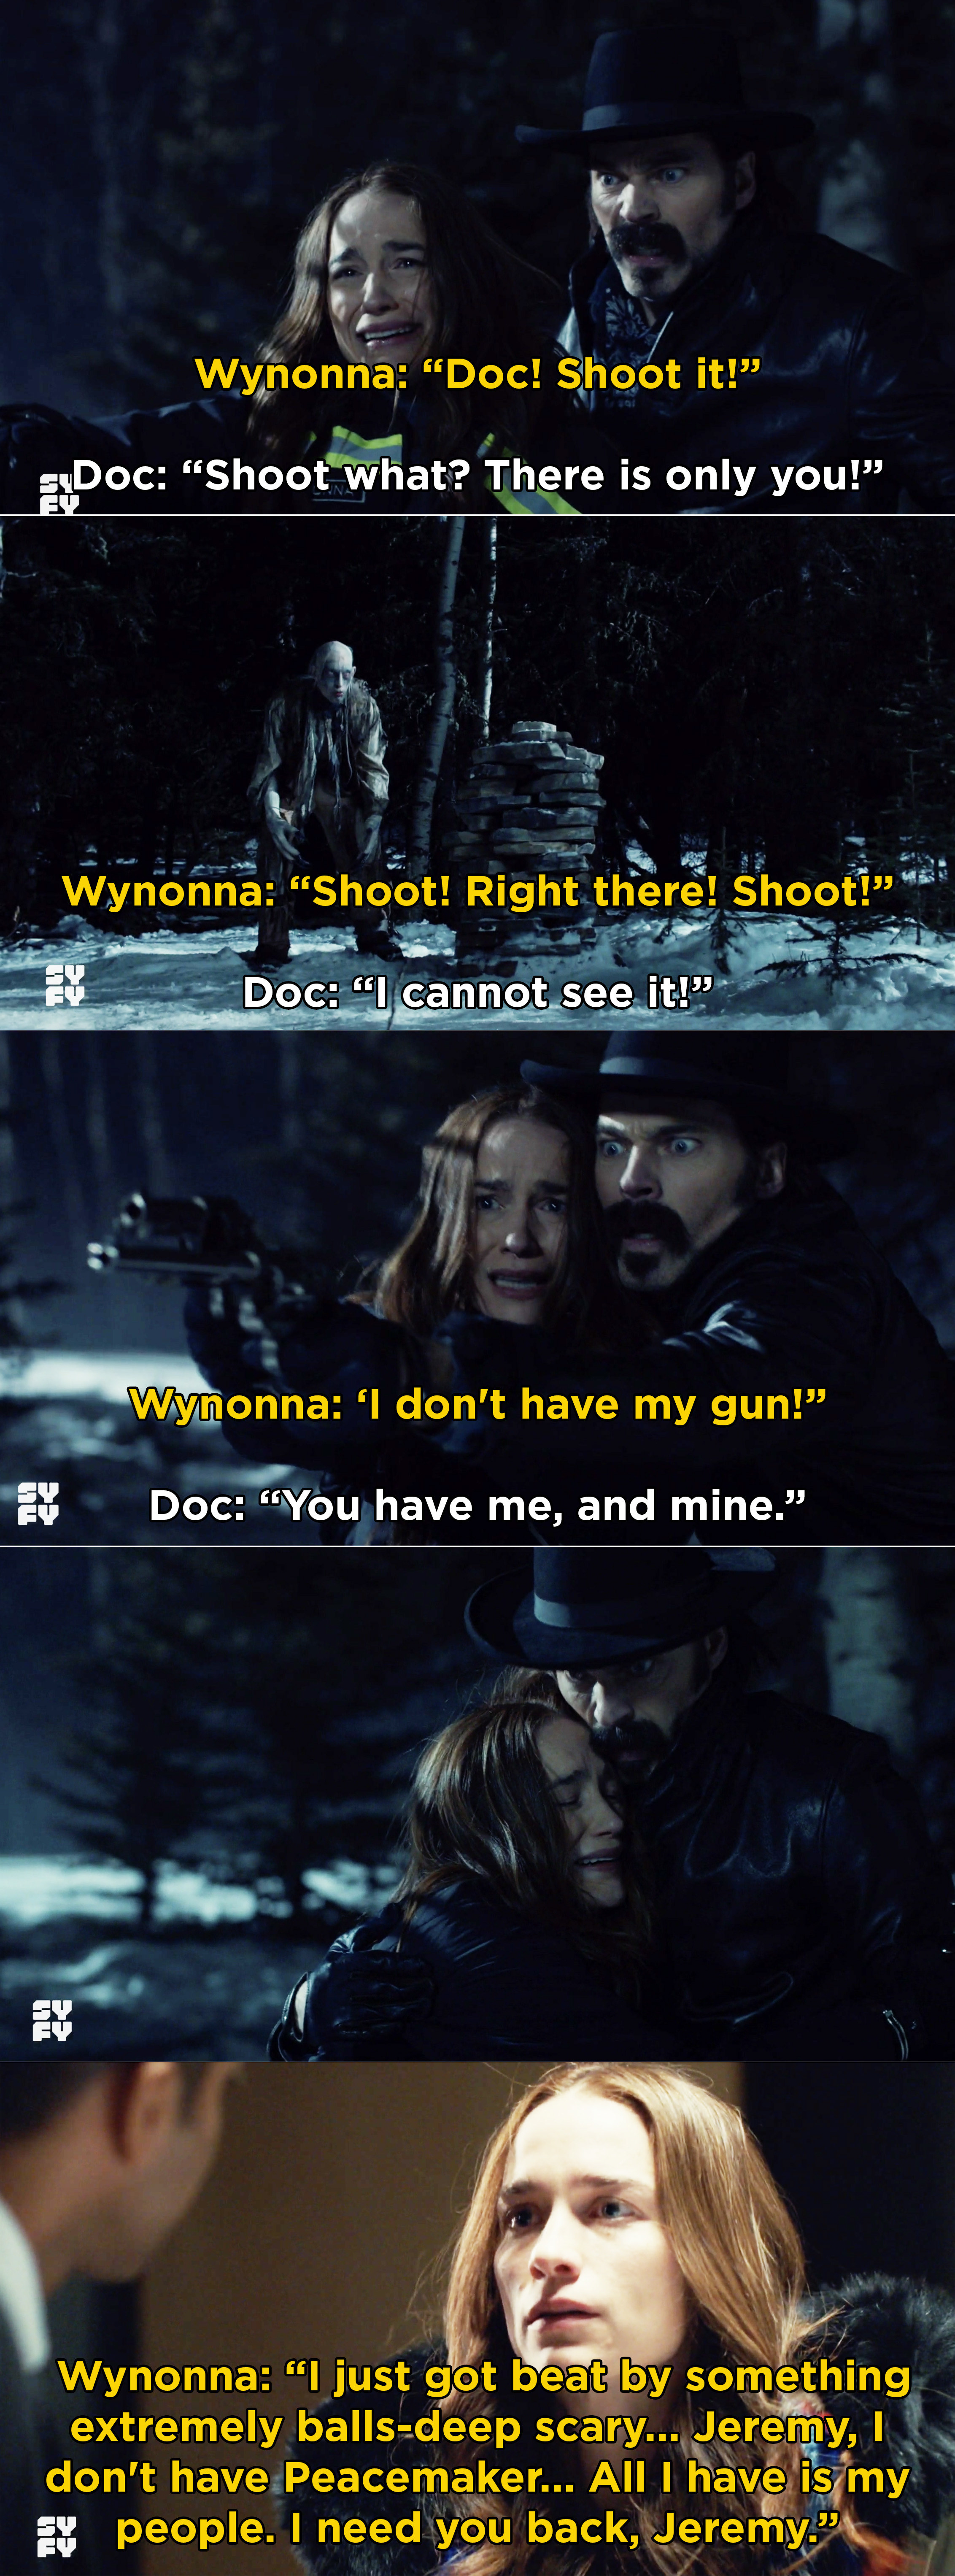 Wynonna crying and pleading with Doc to help her shoot the reaper. Then, Wynonna telling Jeremy she doesn't have Peacemaker and needs him back